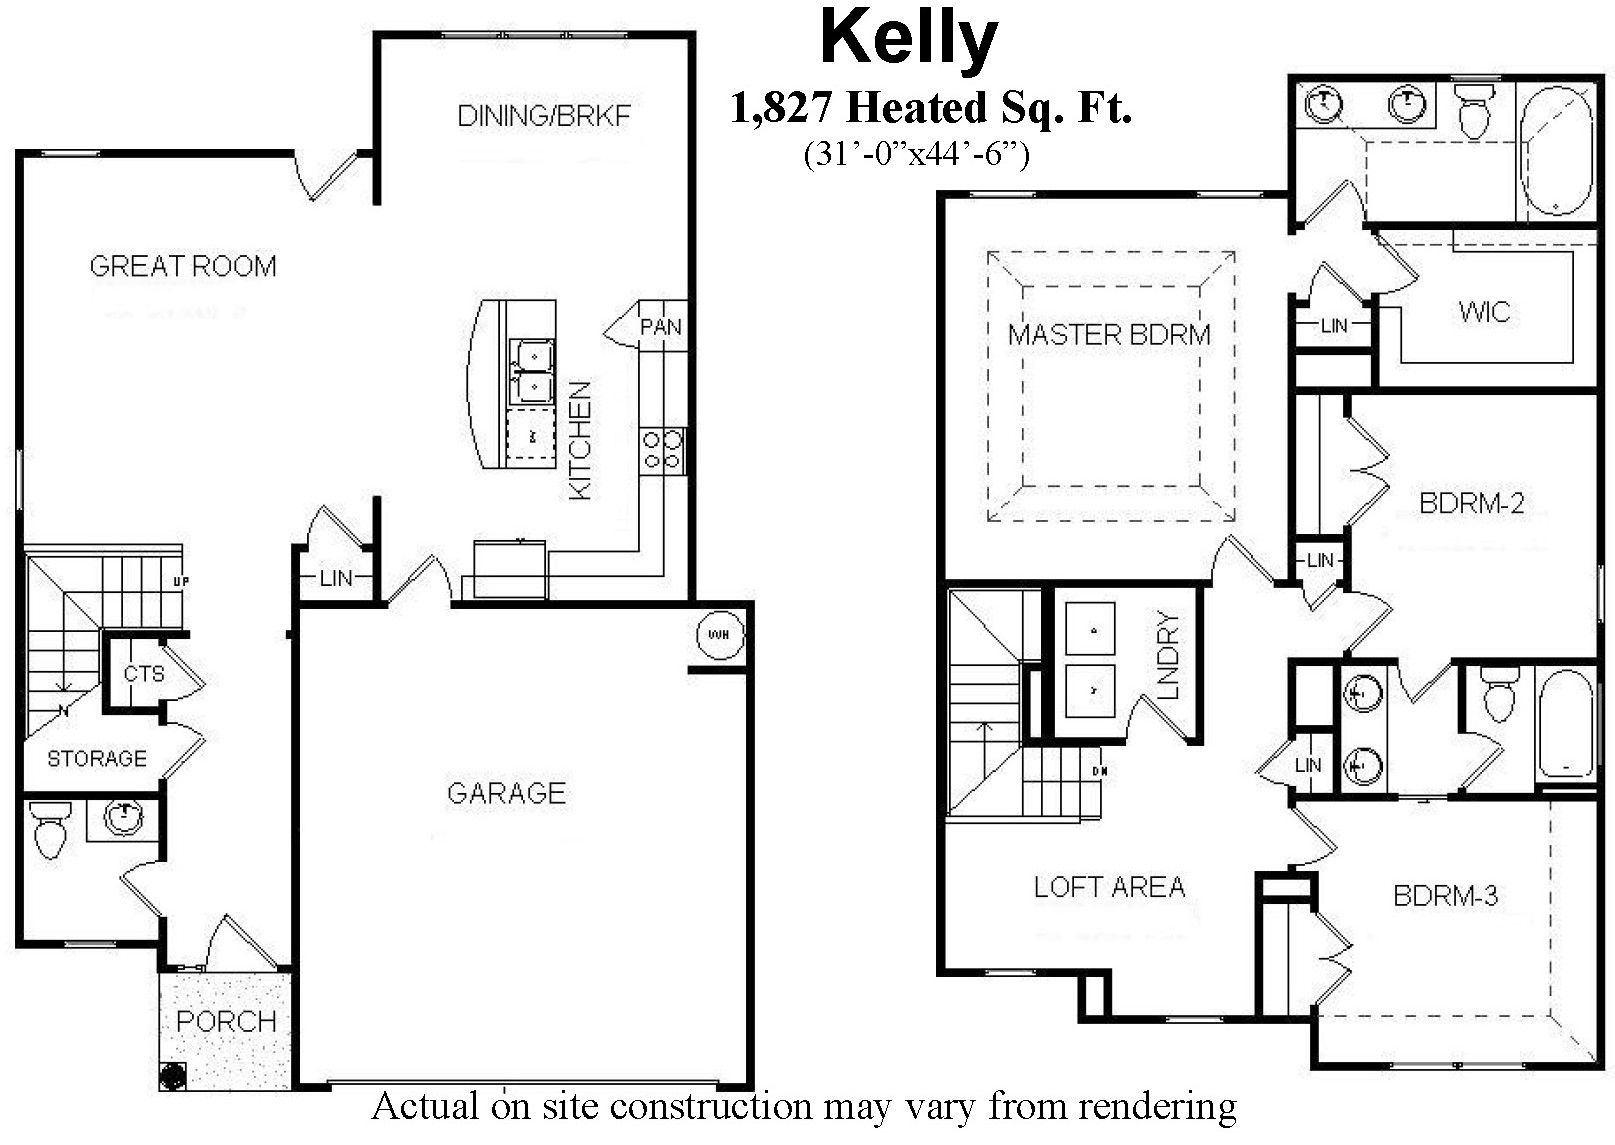 Two Story Open Floor House Plans With 3 Bedrooms Kelly Open Floor House Plans House Floor Plans Floor Plans